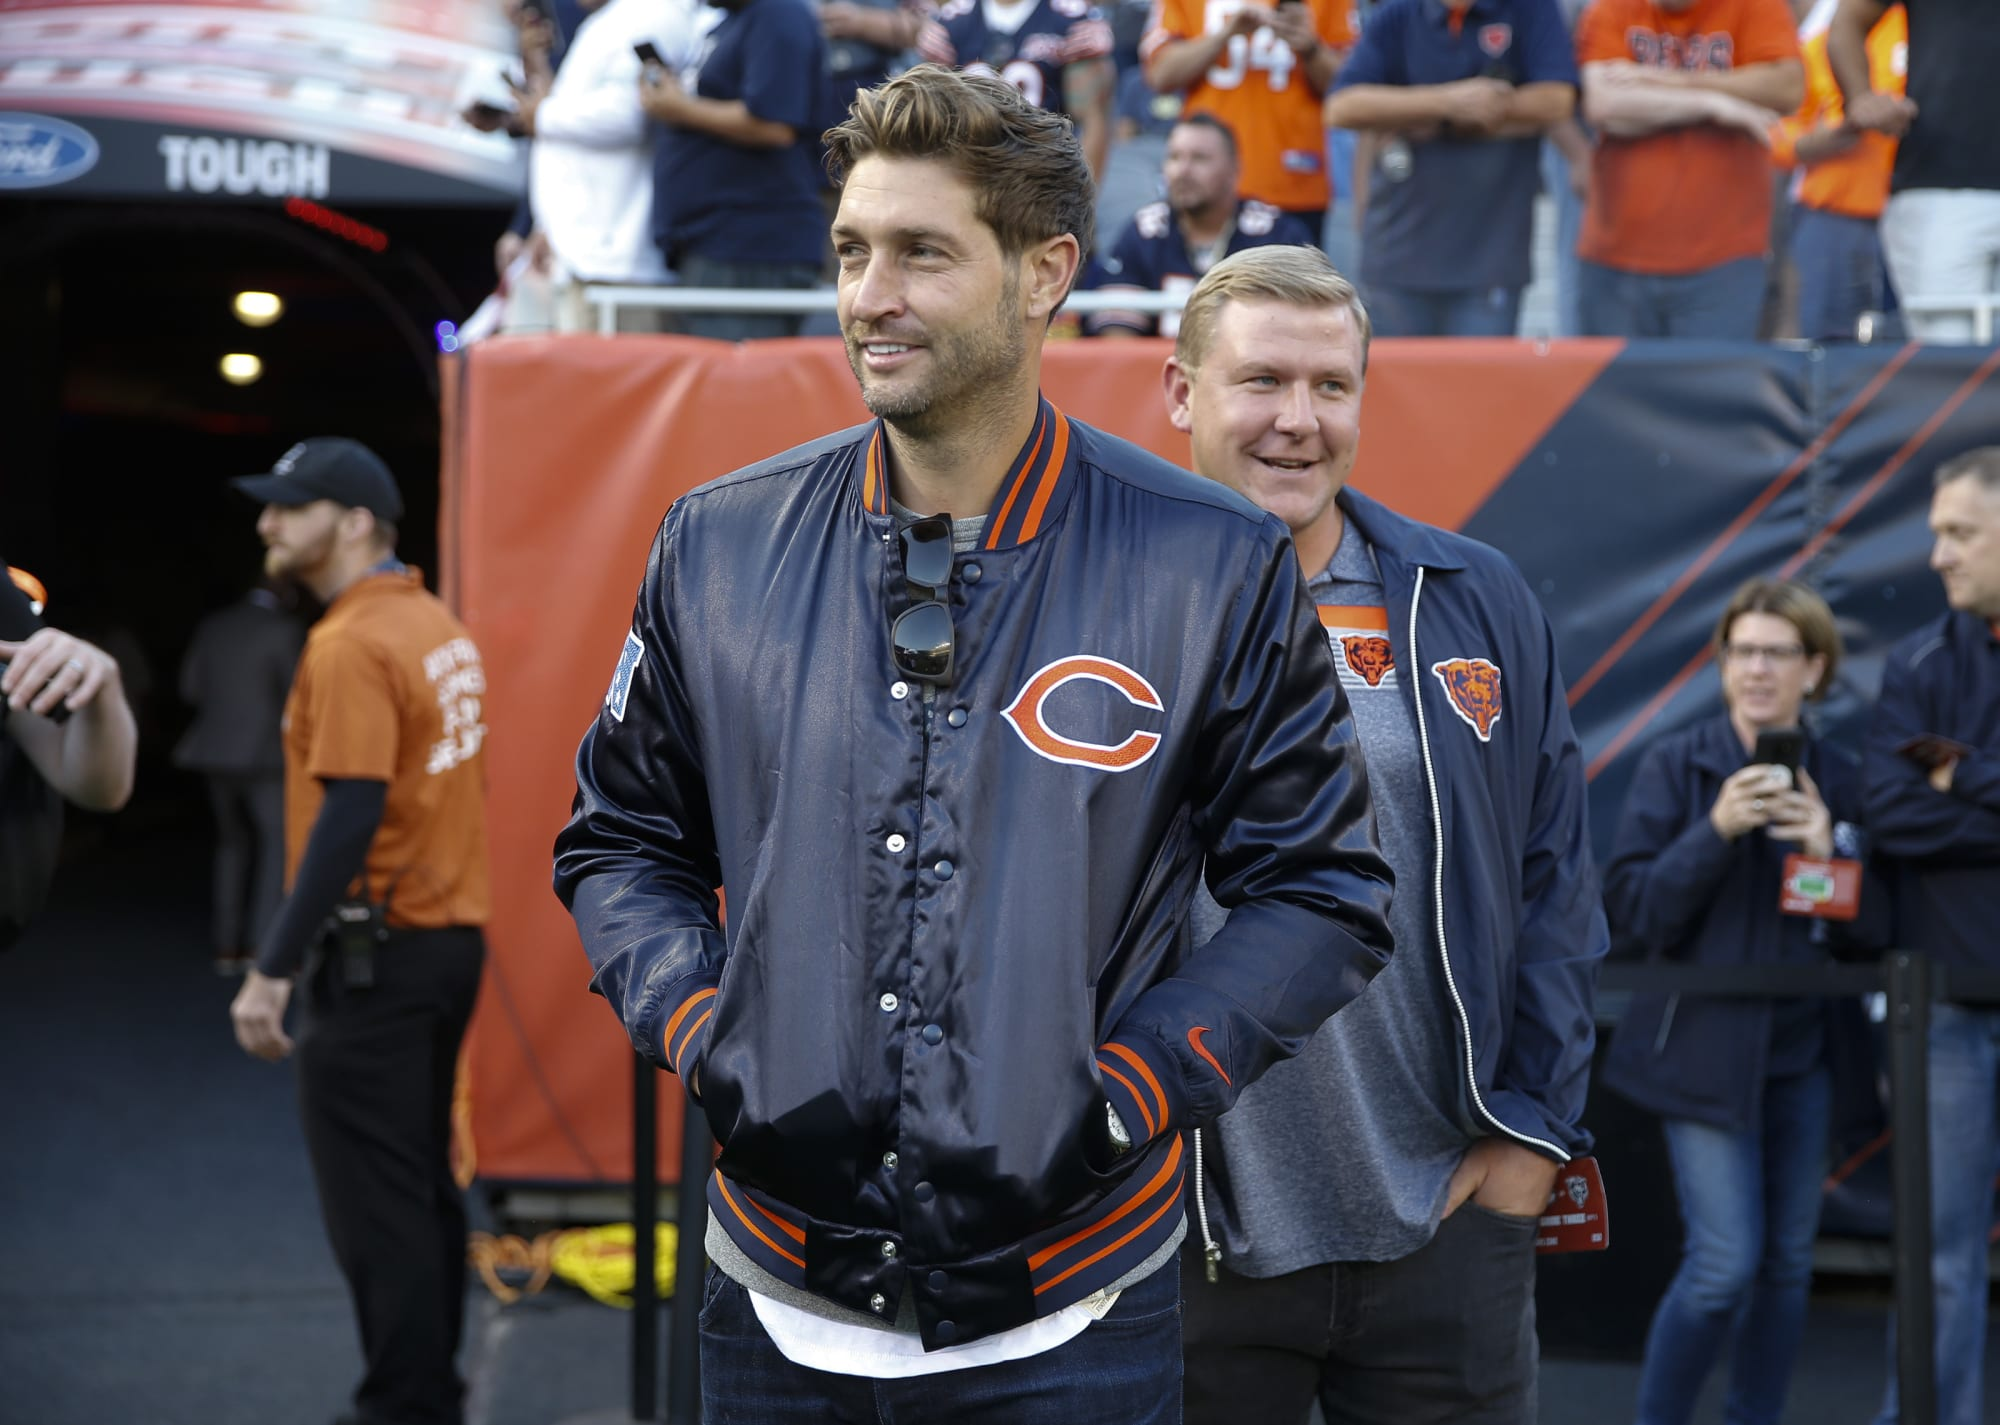 Chicago Bears and fans took Jay Cutler for granted.